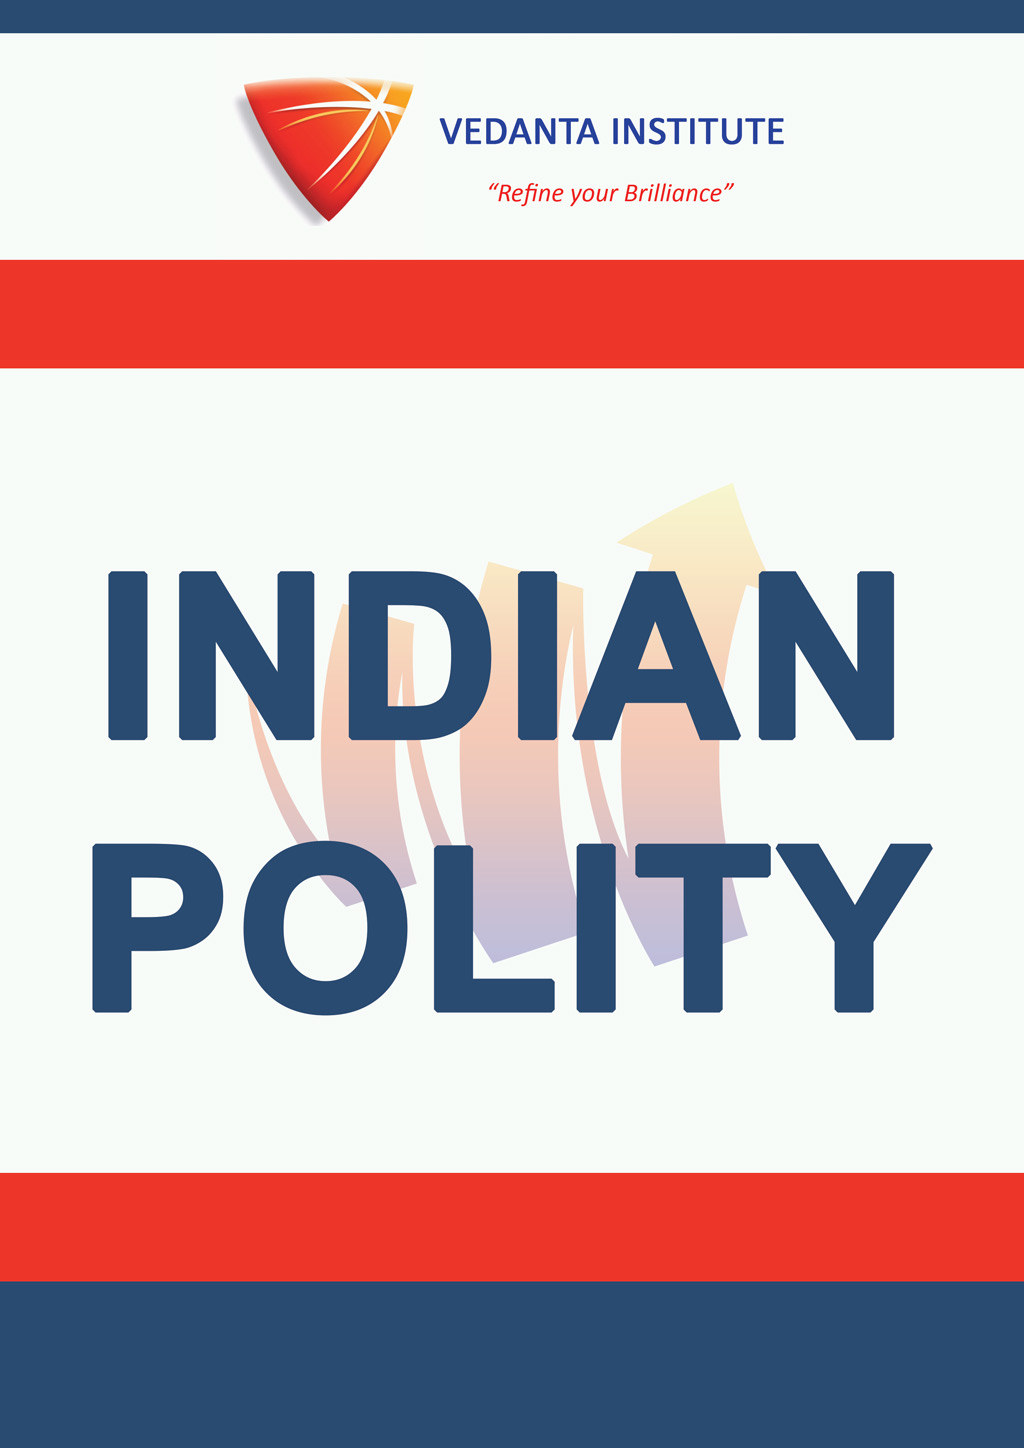 indian-polity-book-for-exam-vedanta-institute